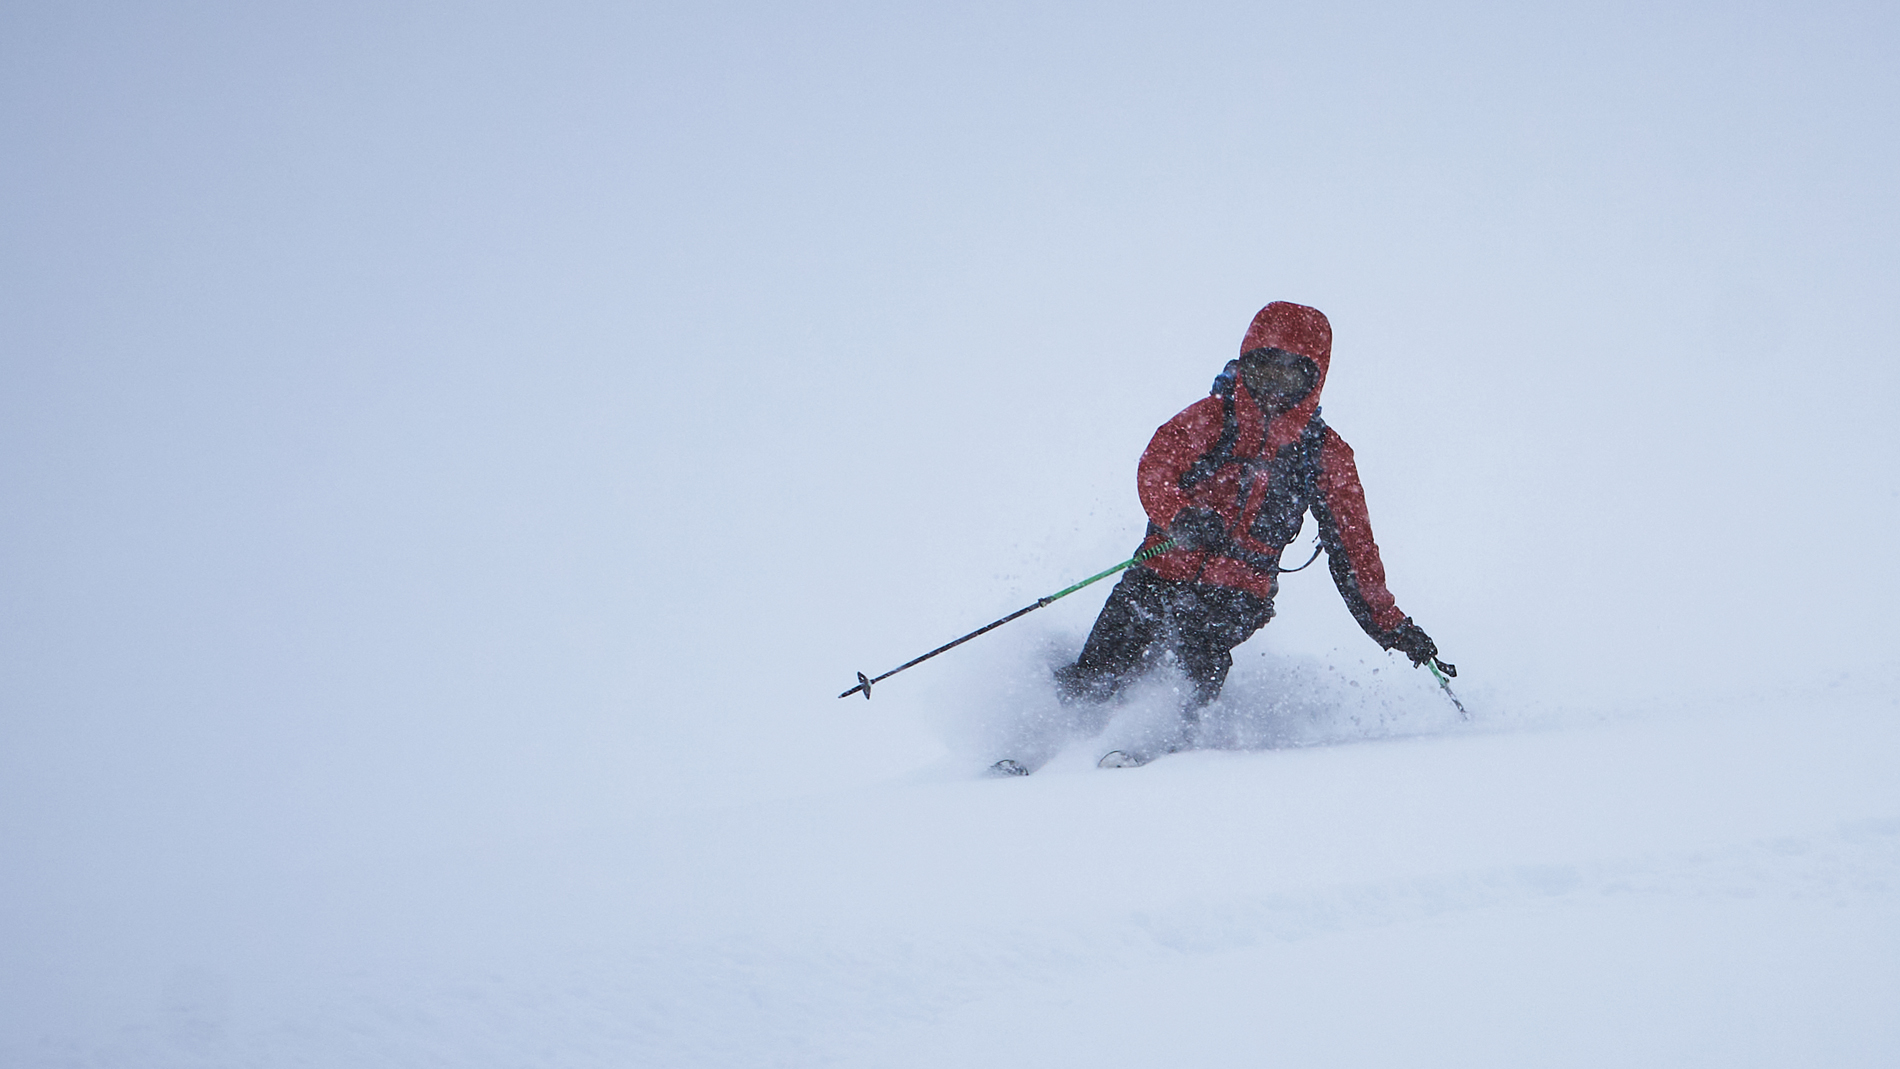 backcountry skiier with red jacket in white out powder